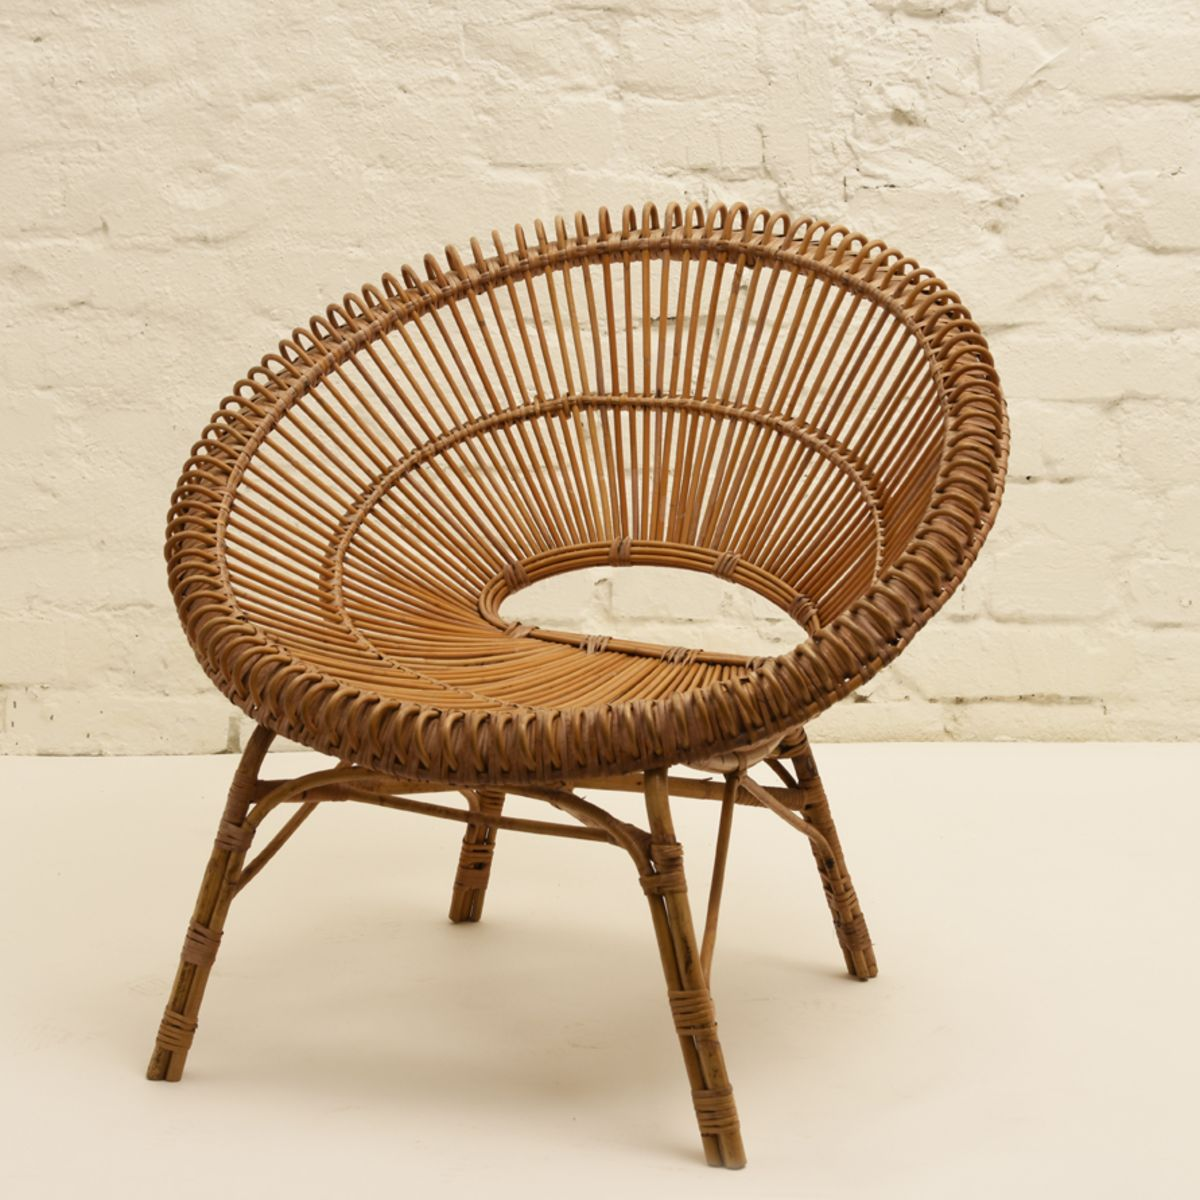 Albini Franco Round Rattan Chair